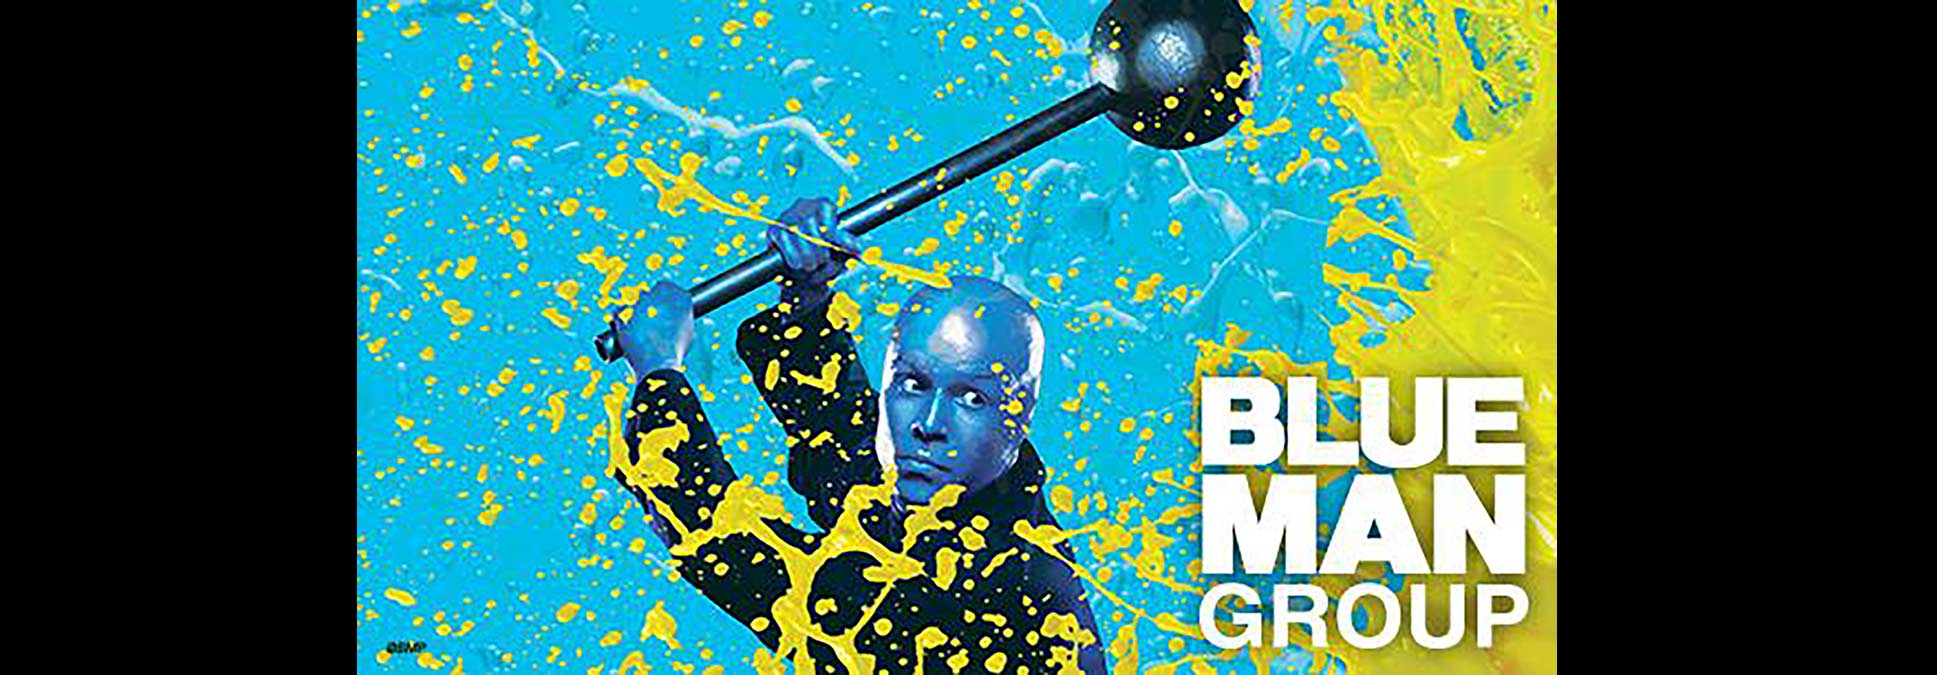 Blue Man Group at theMarcus Performing Arts Center in Milwaukee